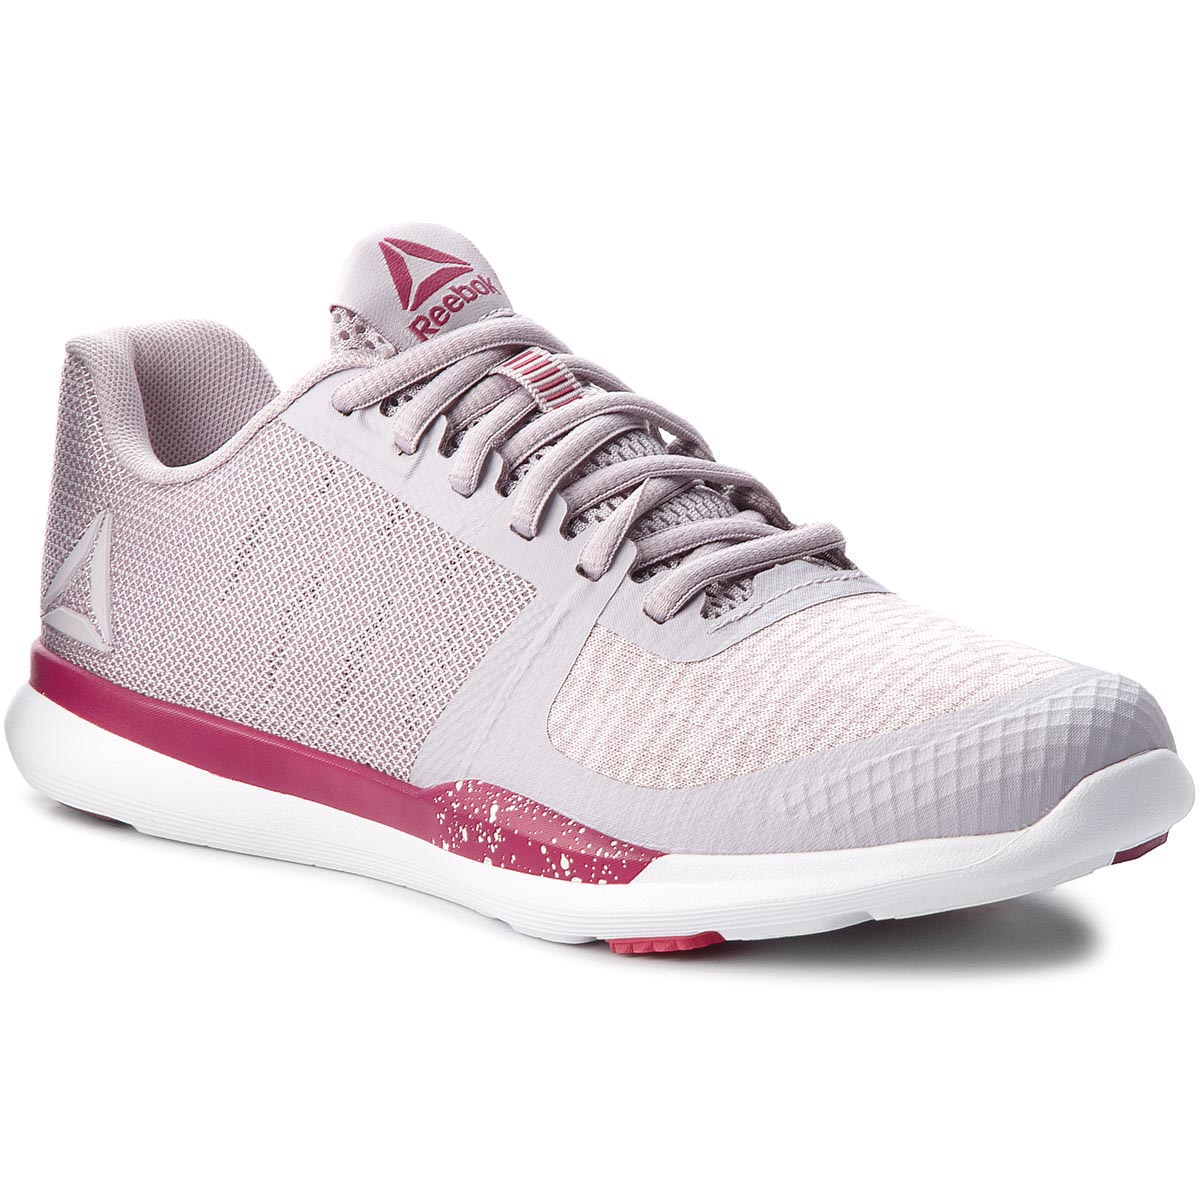 Buty Reebok - Sprint Tr CN4900 Lavender/Berry/Wht/Pink